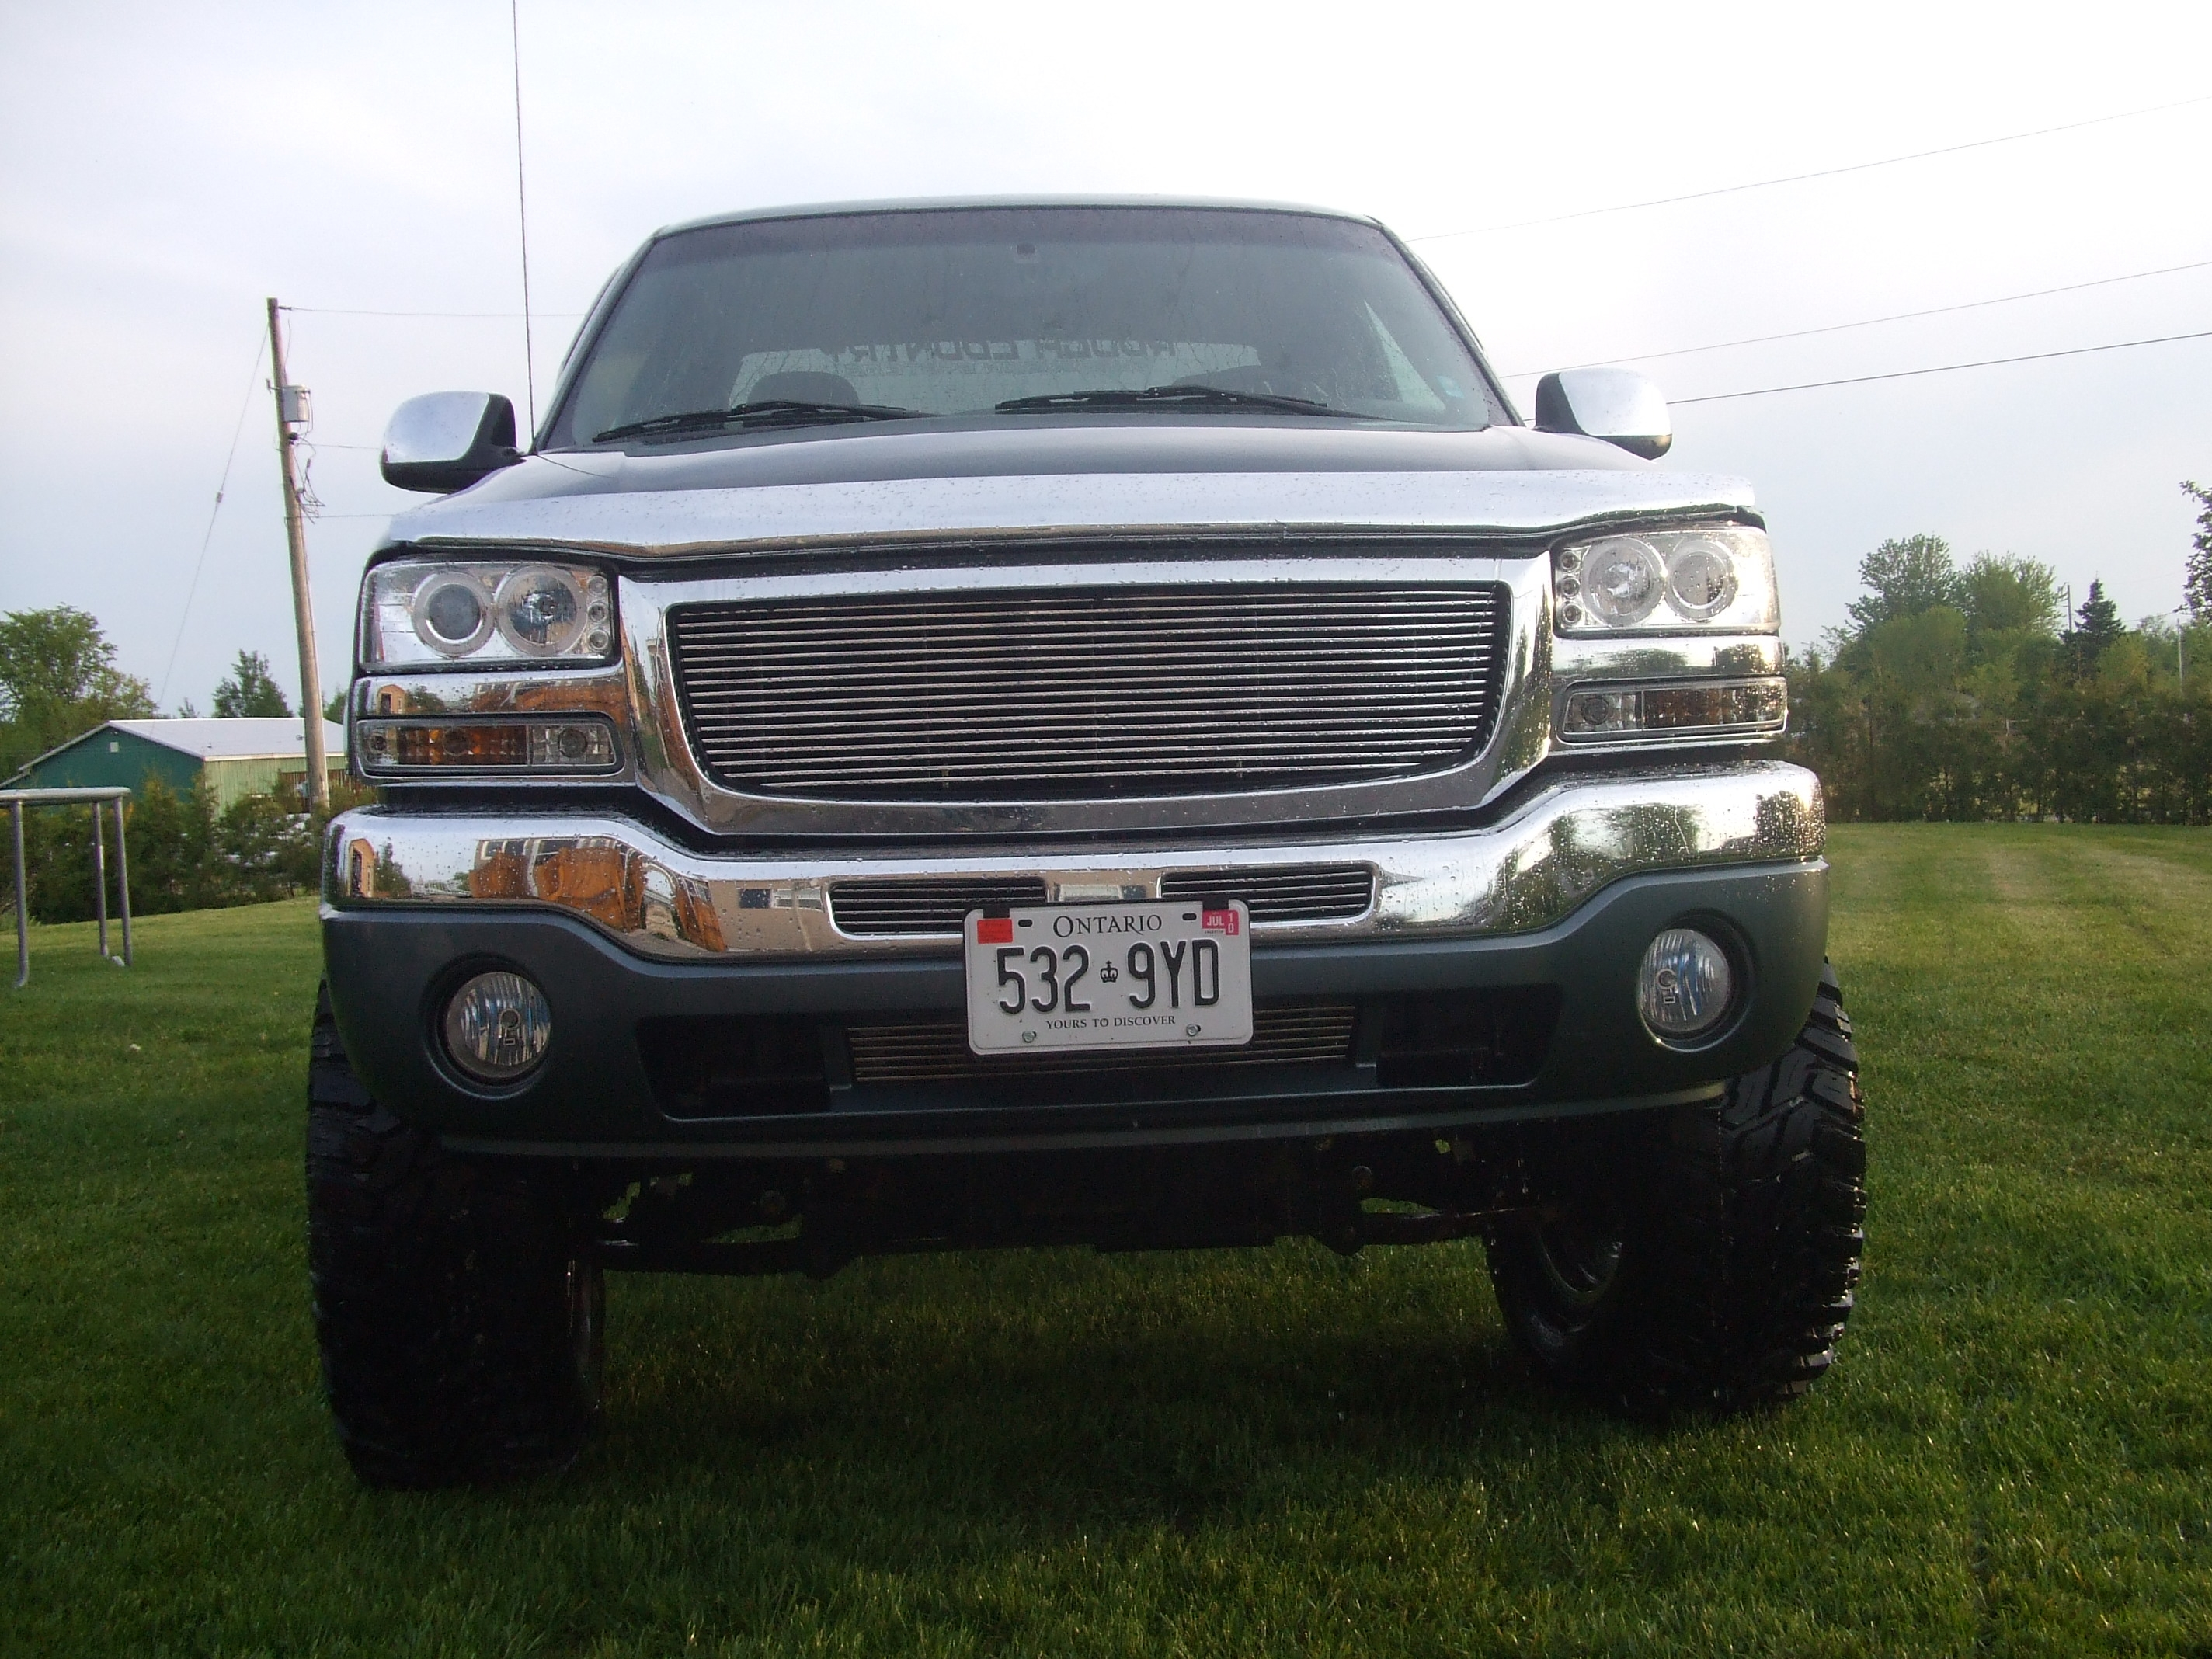 bigblue07 39 s 2007 gmc sierra 1500 extended cab in cornwall on. Black Bedroom Furniture Sets. Home Design Ideas